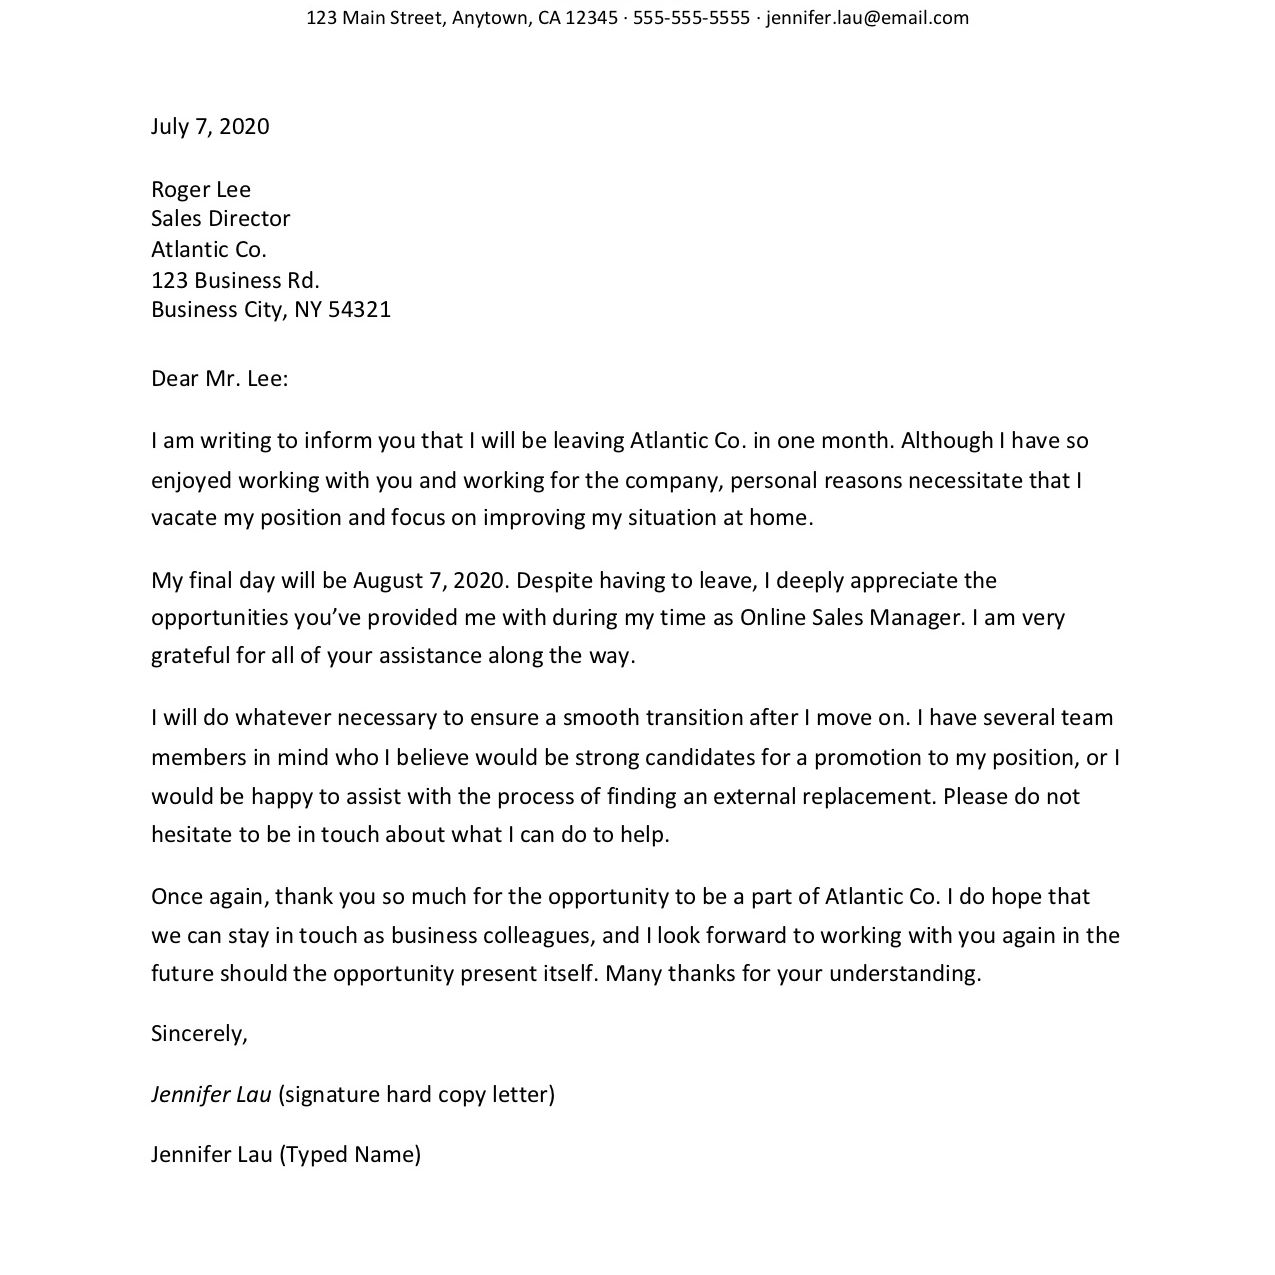 Resignation Letter Family Reason from www.thebalancecareers.com